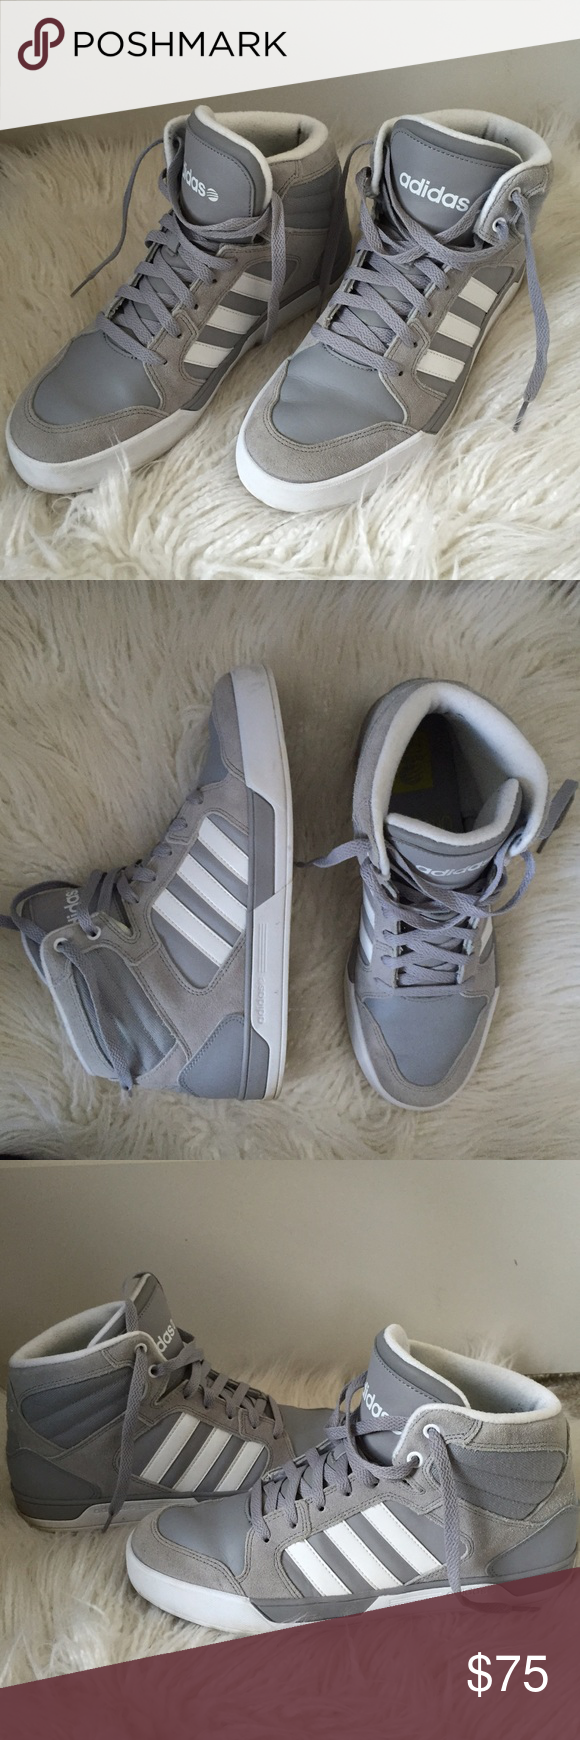 Grey Adidas High Top Sneakers  Very good condition. No issues or defects. Men's size 9 or women's size 10.  SAVE MONEY:  YES ✅ TRADES YES ✅ OFFERS  YES ✅ BUNDLES OF 3 OR MORE- 30% OFF Adidas Shoes Sneakers